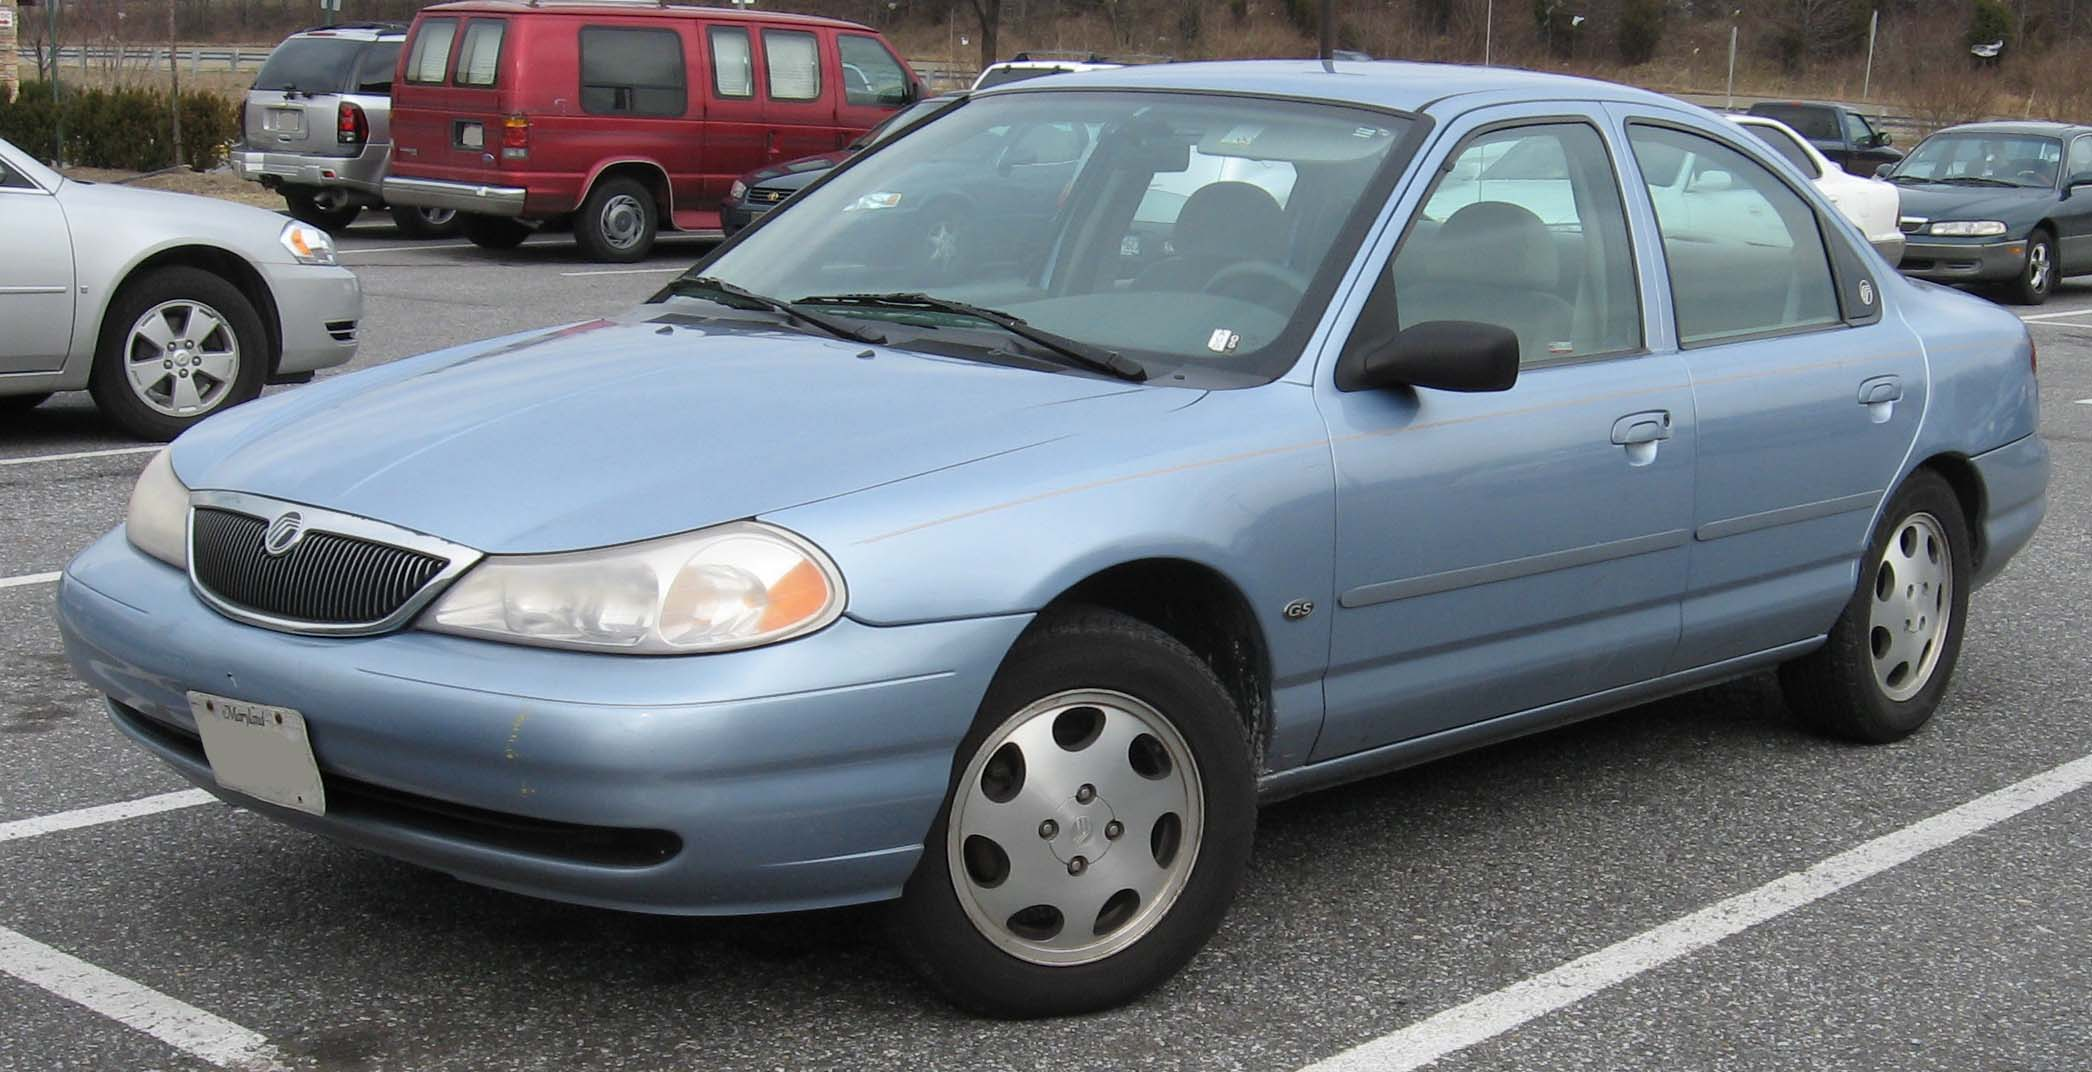 1995 Mercury Tracer Engine Diagram Guide And Troubleshooting Of Mystique Wiring Harness Blue Sable